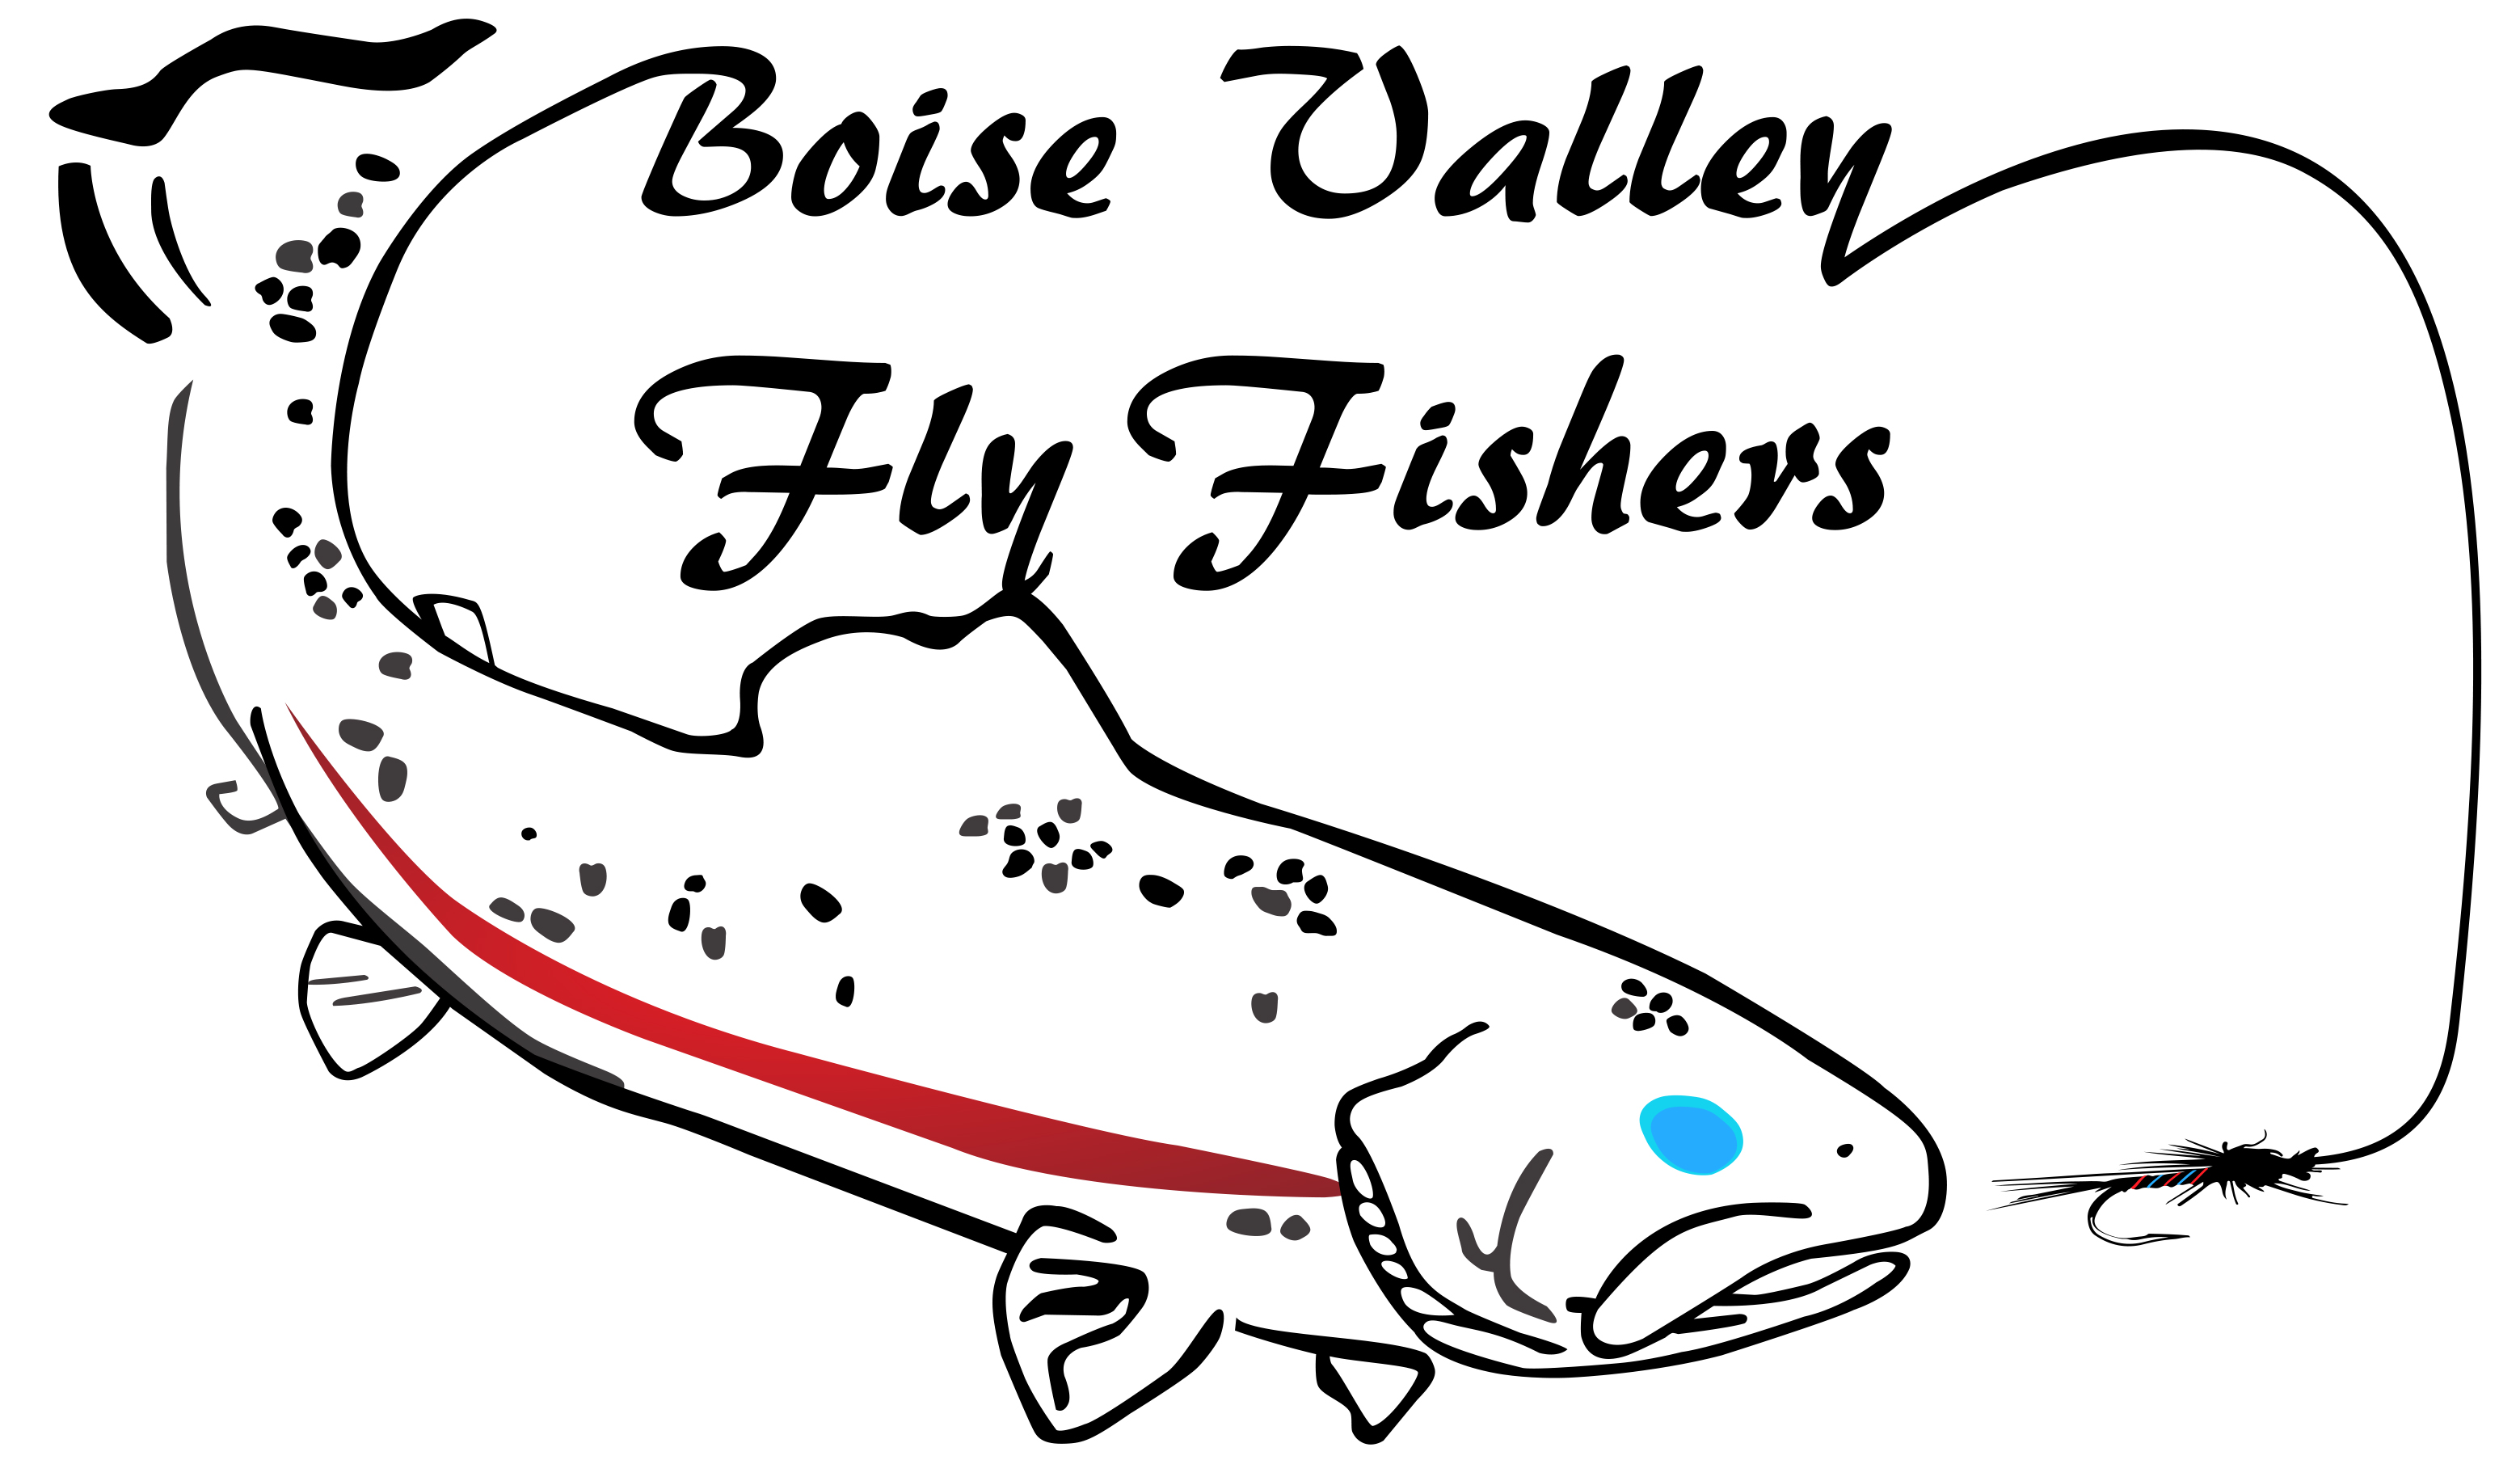 Boise Valley Fly Fishers